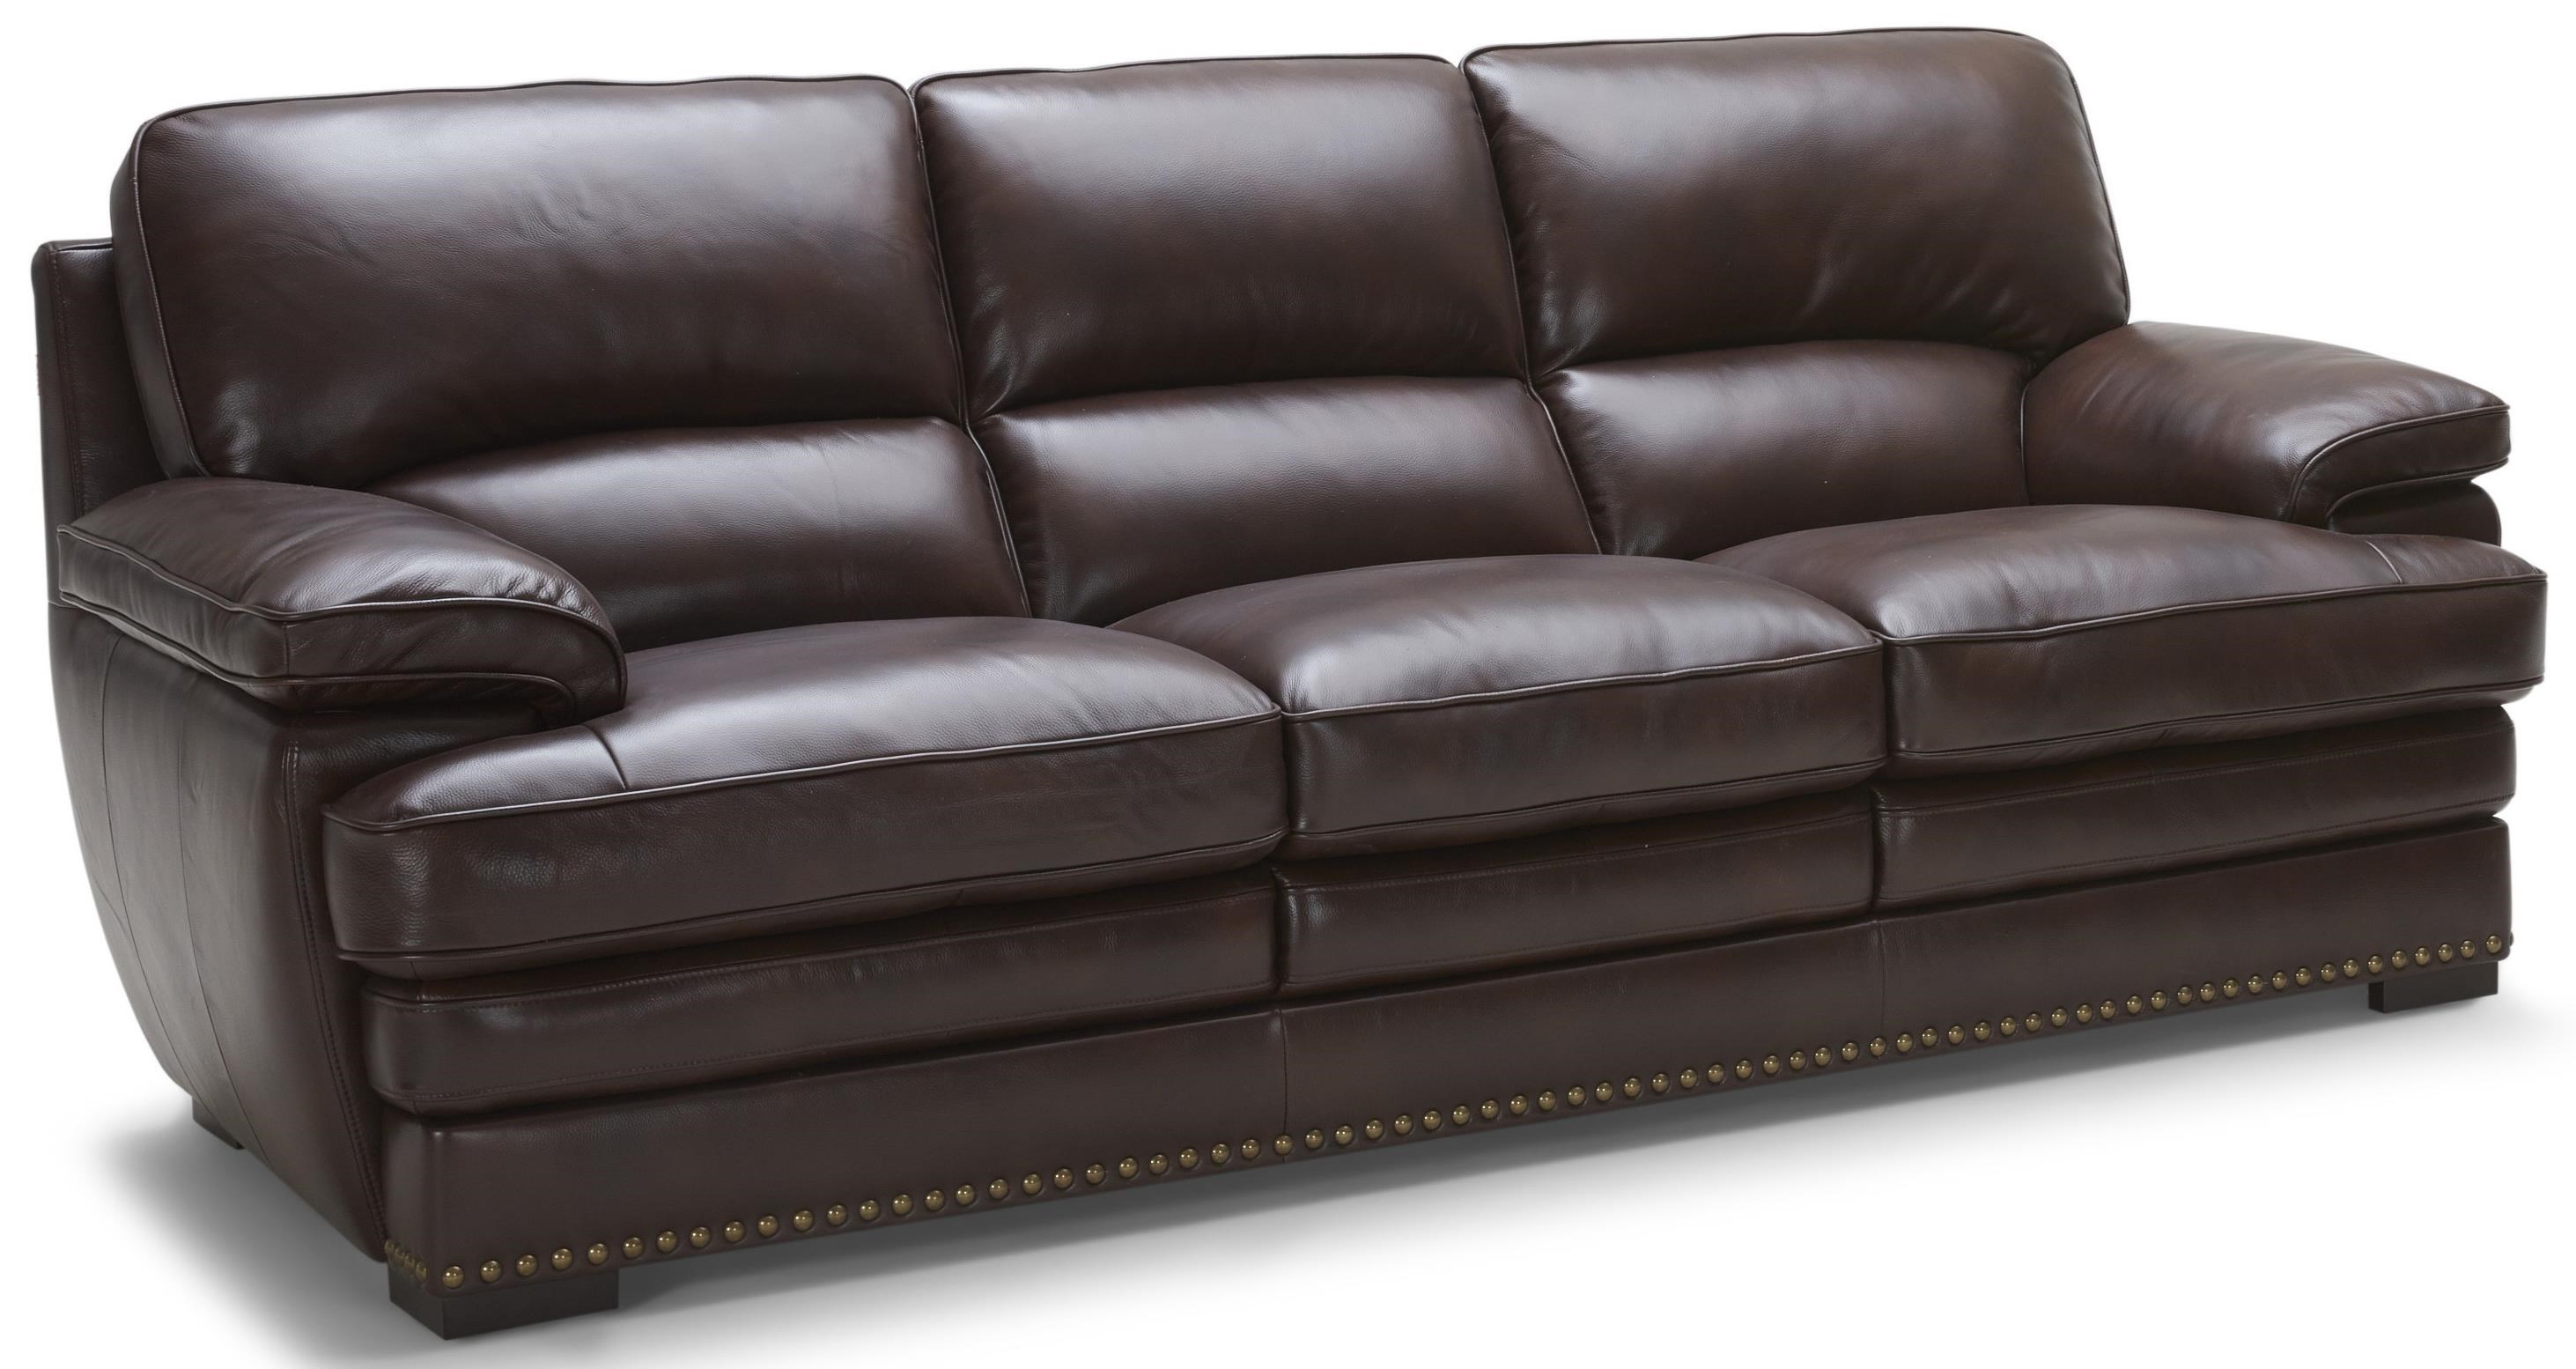 sofa warehouse manchester 3 seater l shaped dimensions m 3301 brown leather pilgrim furniture city by